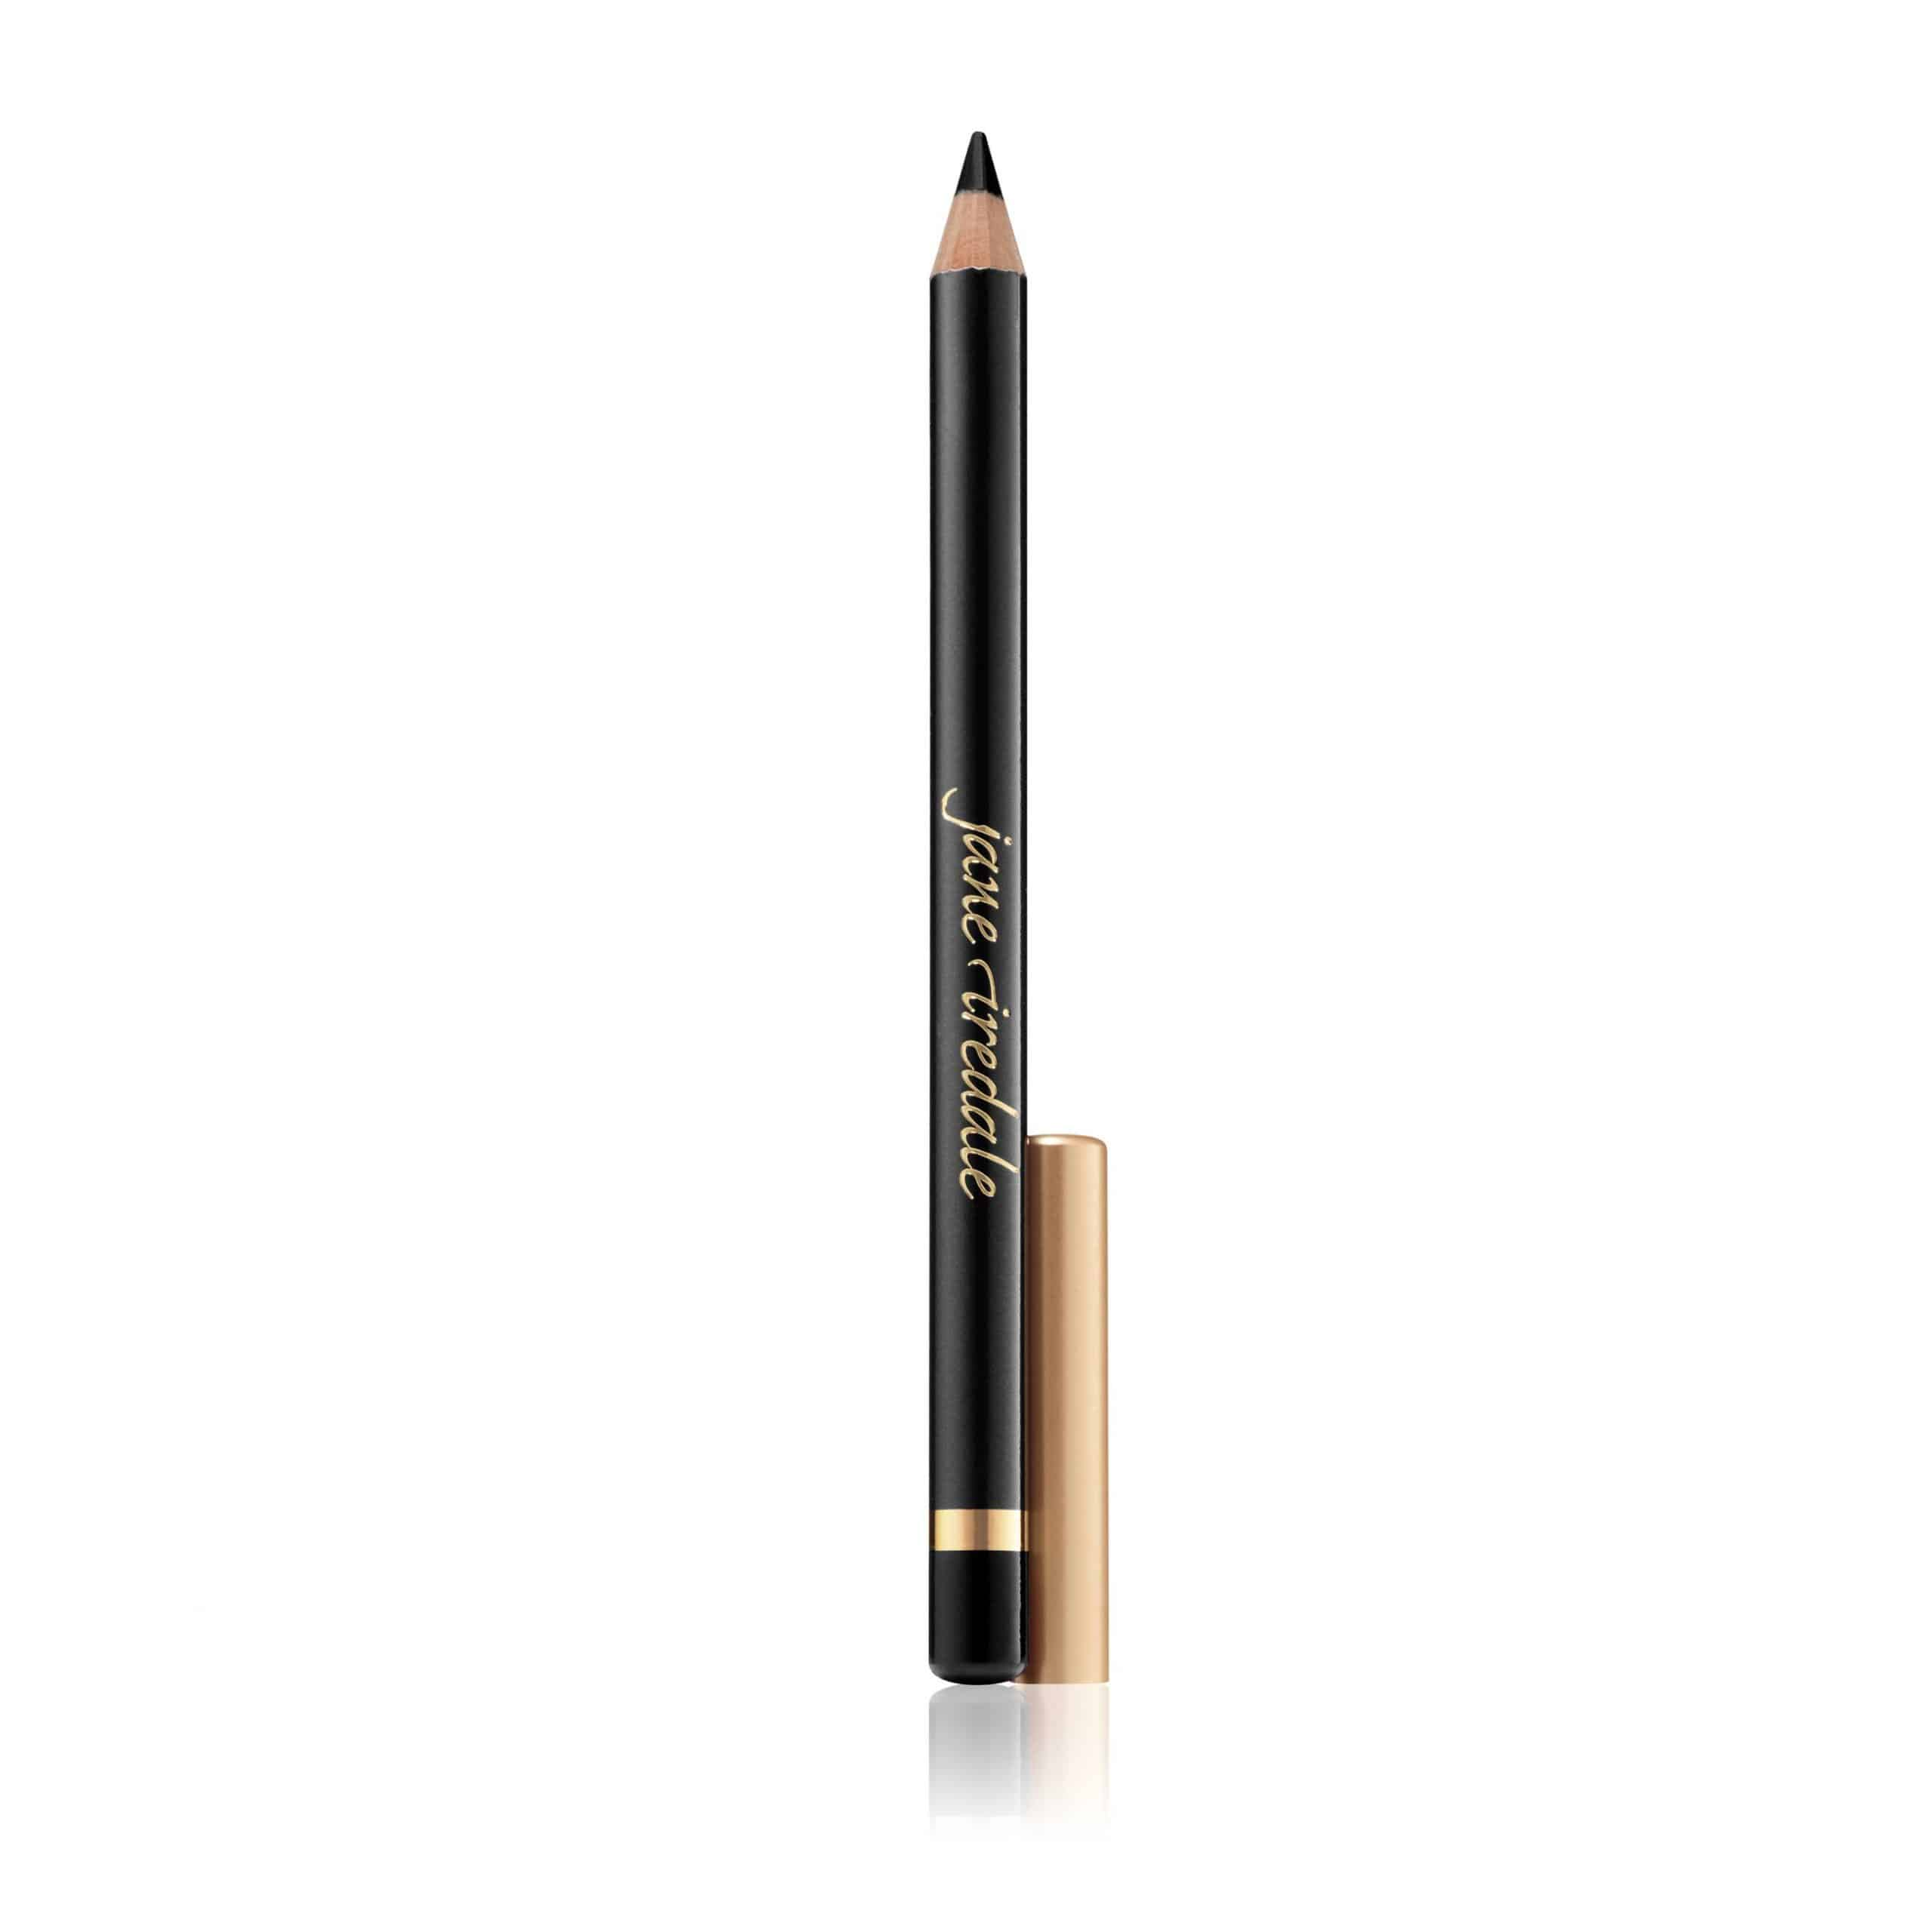 Jane Iredale Pencil scaled